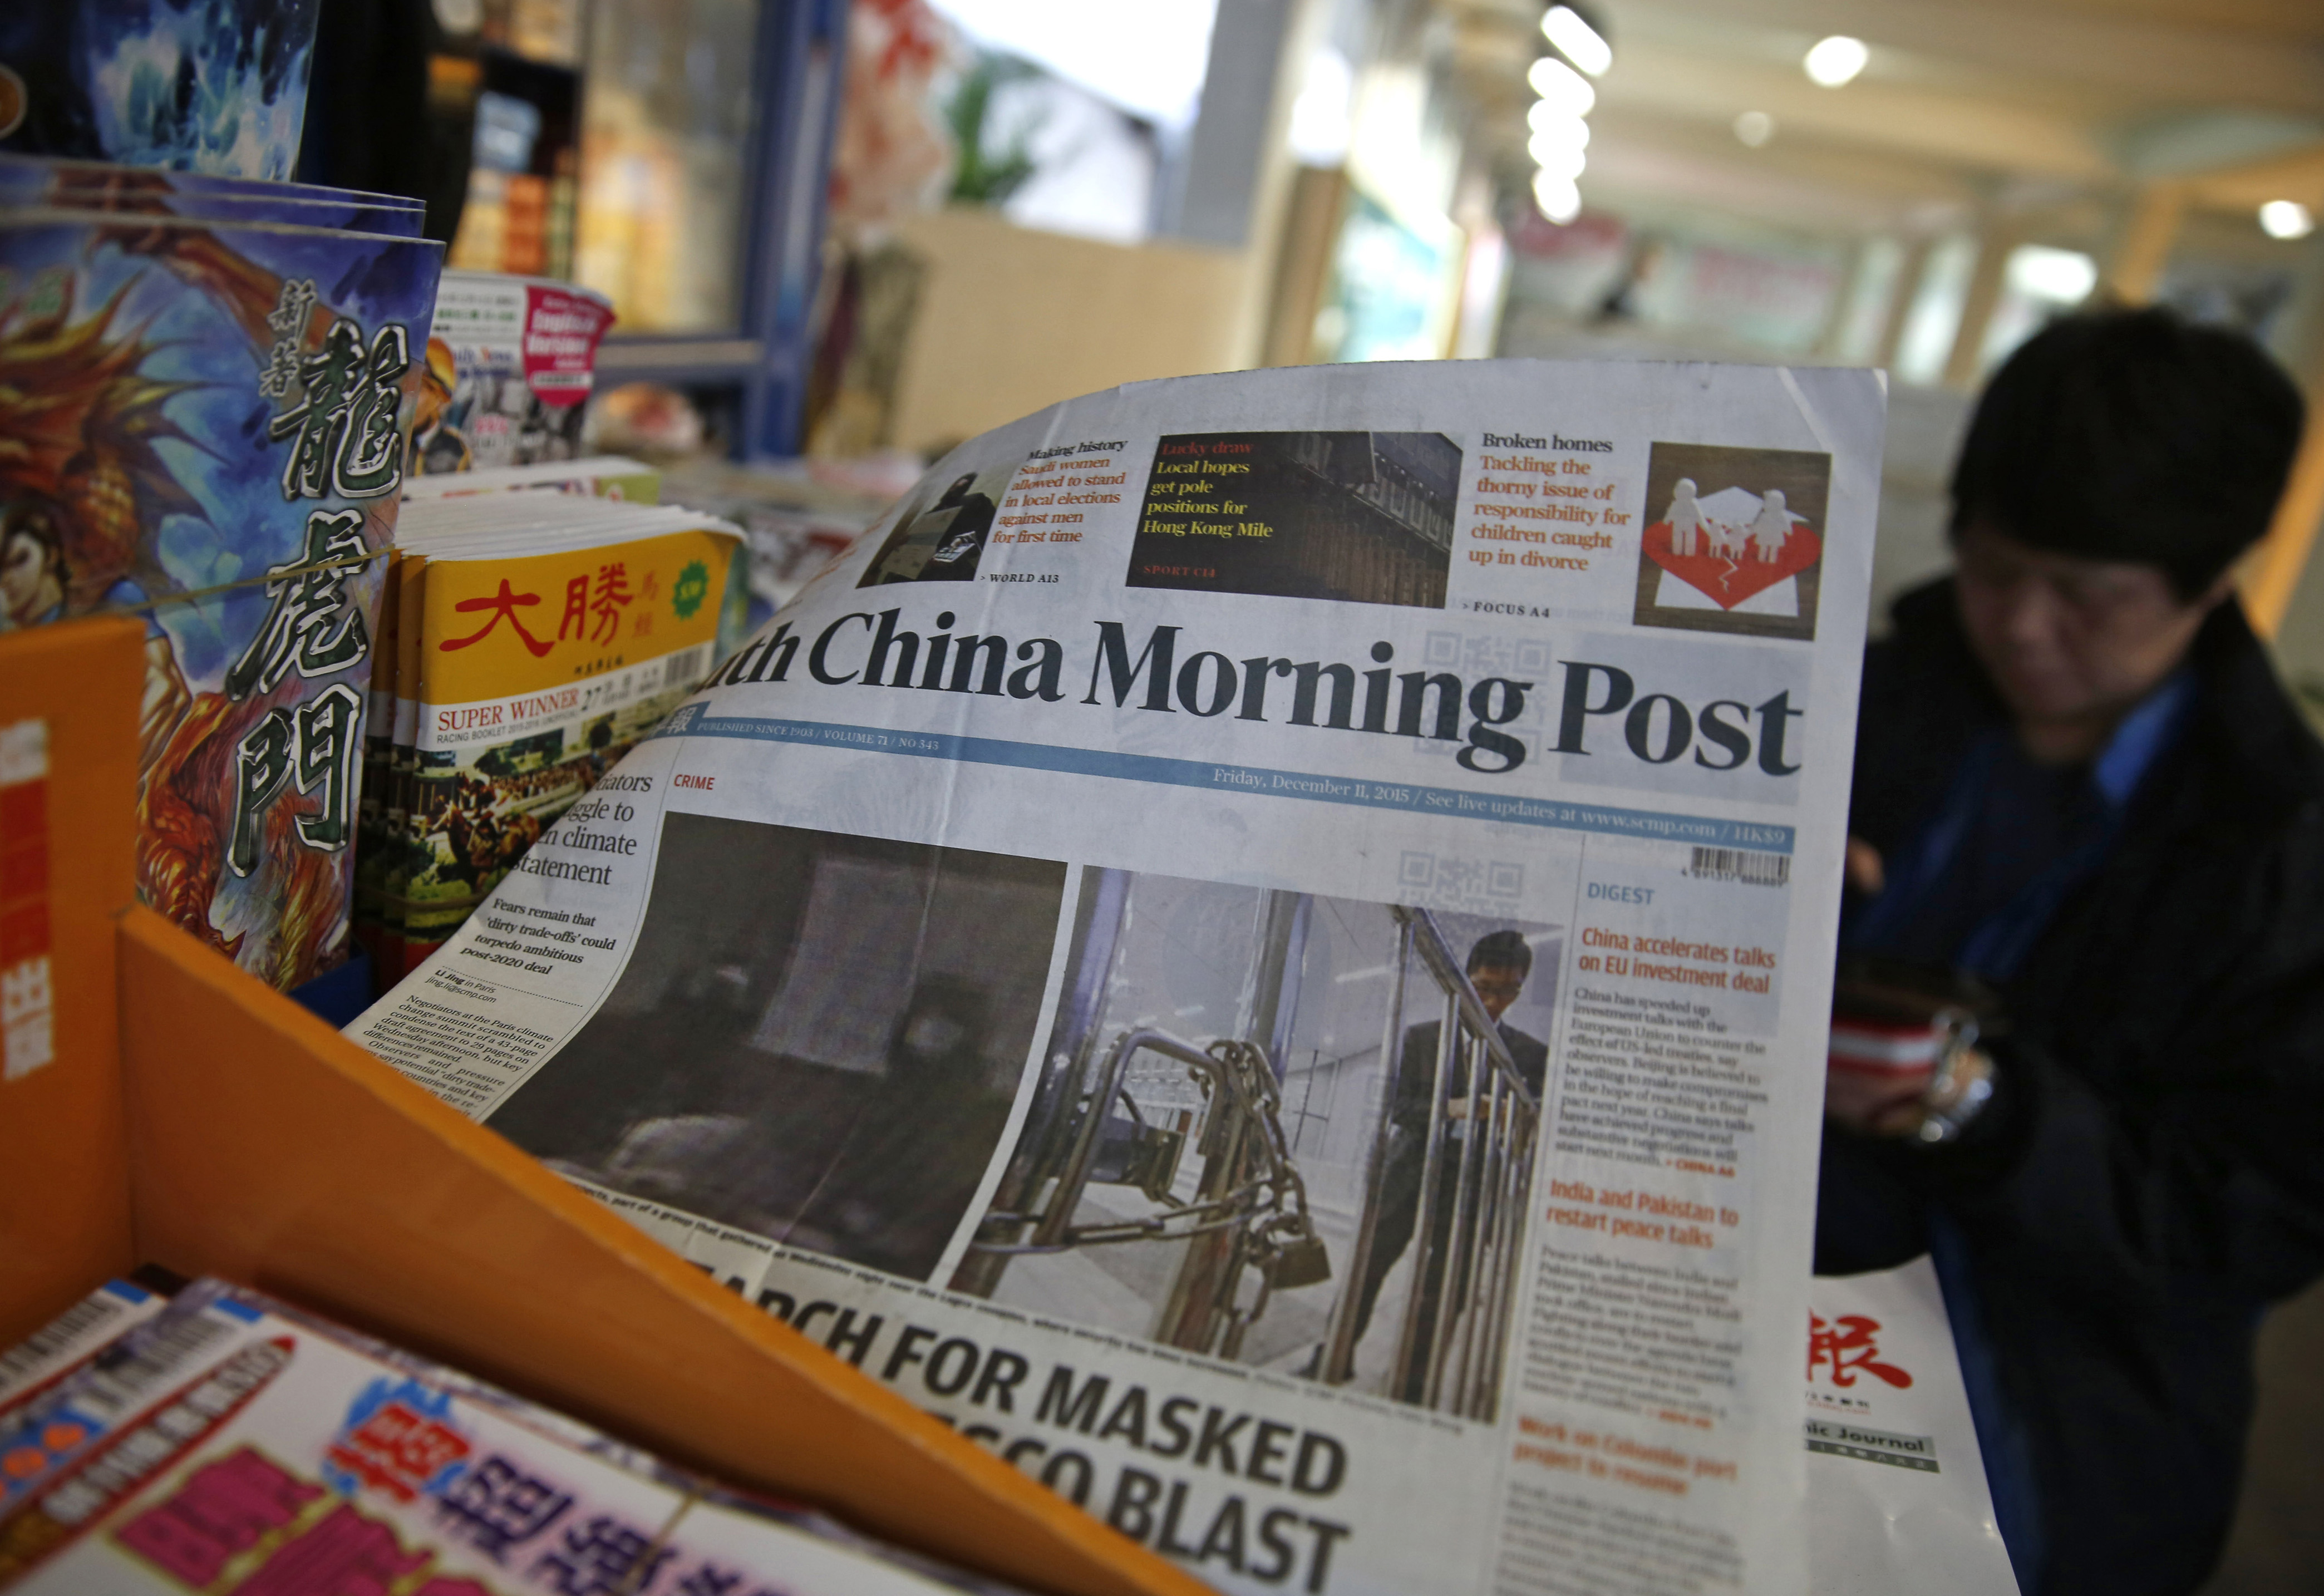 The front page of South China Morning Post is flipped by the wind as a vendor sits at her news stand in Hong Kong, Friday, Dec. 11, 2015. Chinese e-commerce giant Alibaba says it's buying Hong Kong's leading English language newspaper, the South China Morning Post. Alibaba Group said late Friday it signed a deal with publisher SCMP Group to buy the Post and the company's other media assets, which also include magazines, outdoor advertising and digital media. Photo: AP